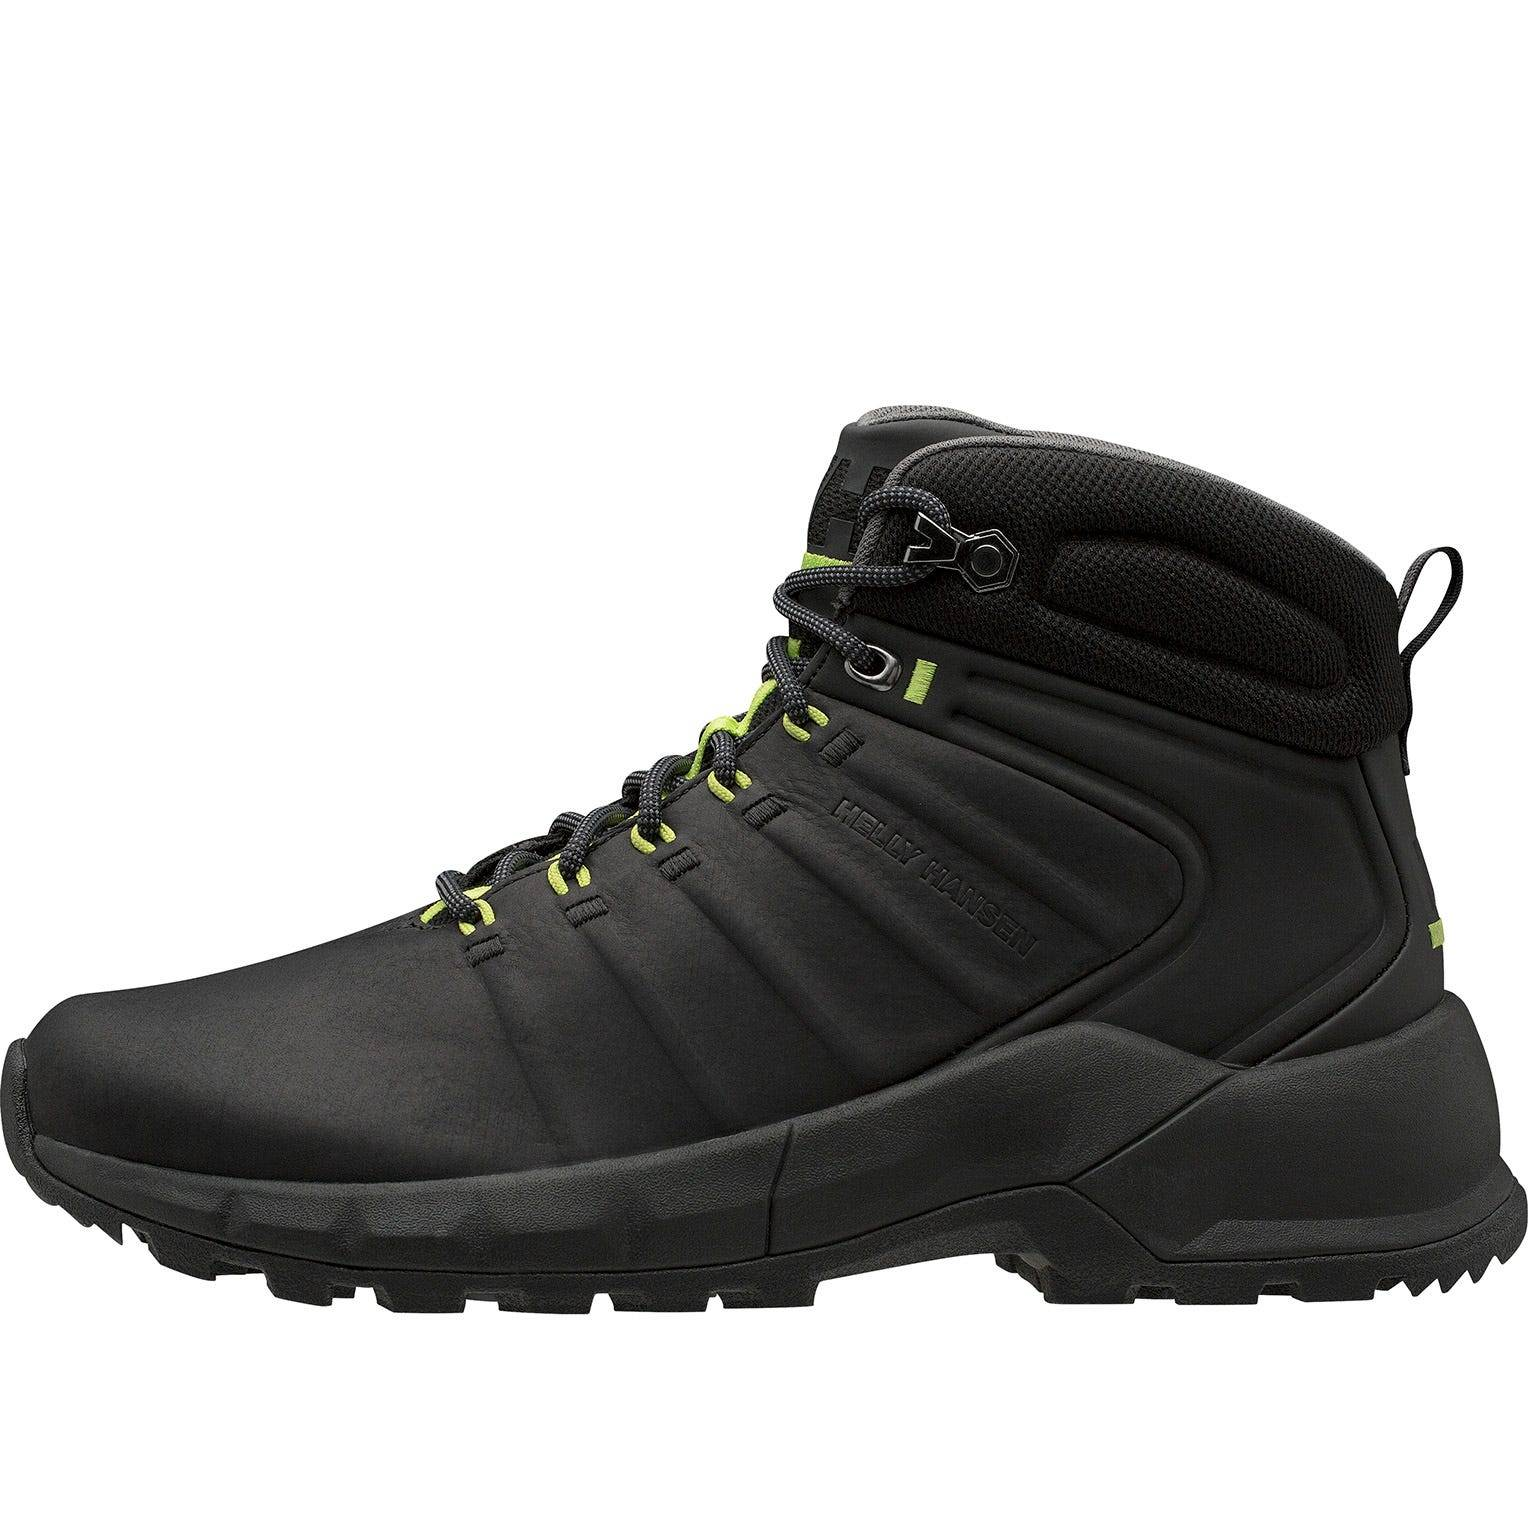 Helly Hansen Pinecliff Boot Mens Hiking Black 40.5/7.5